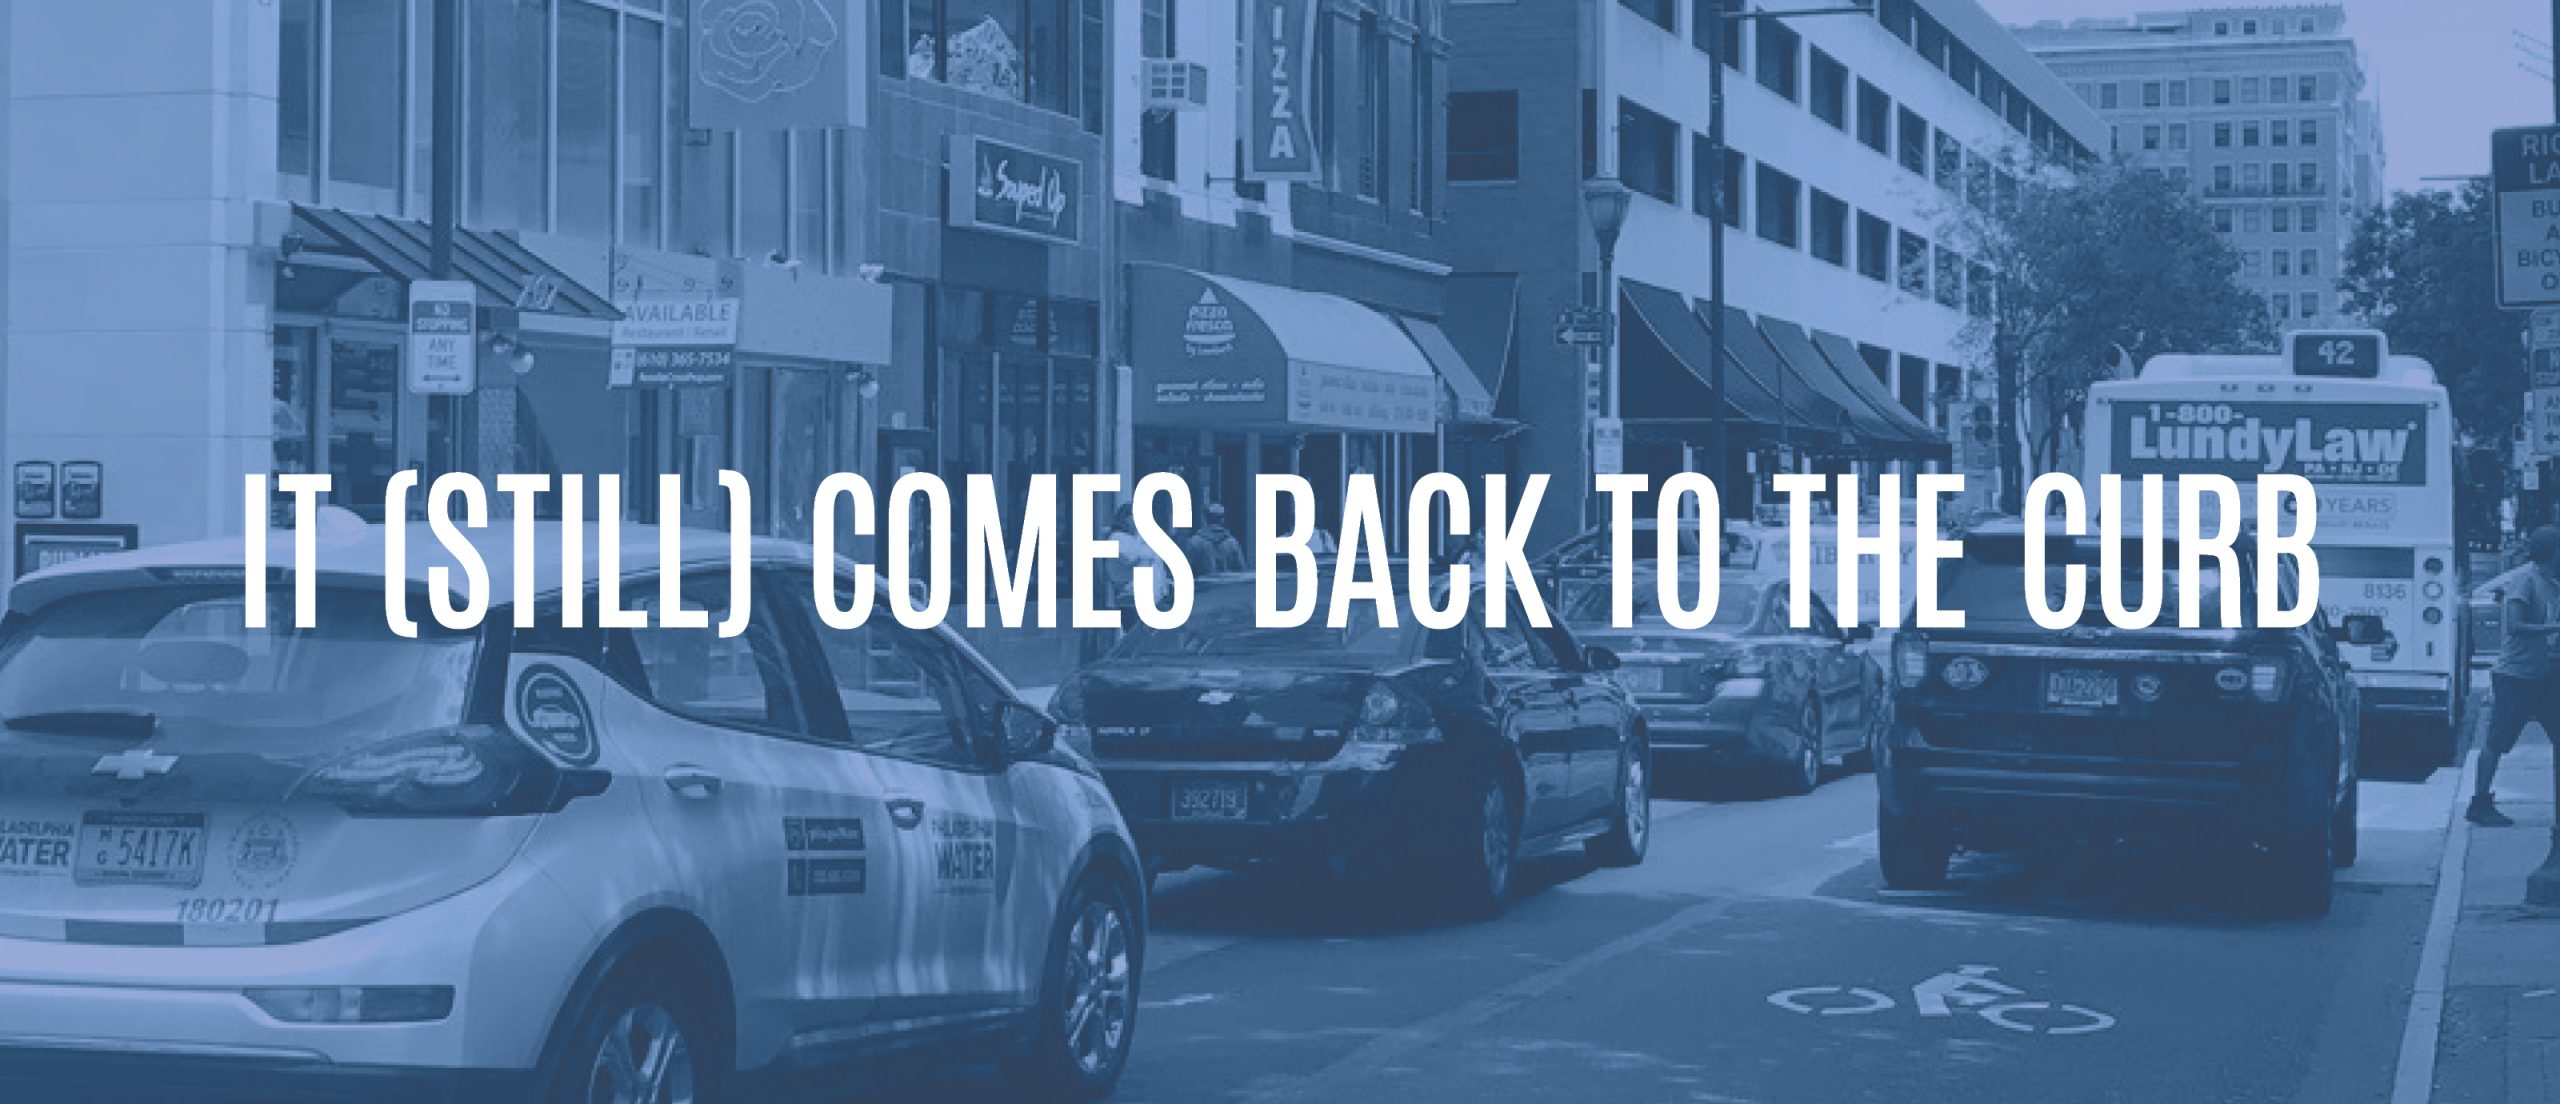 Blog Title - It (still) comes back to the curb